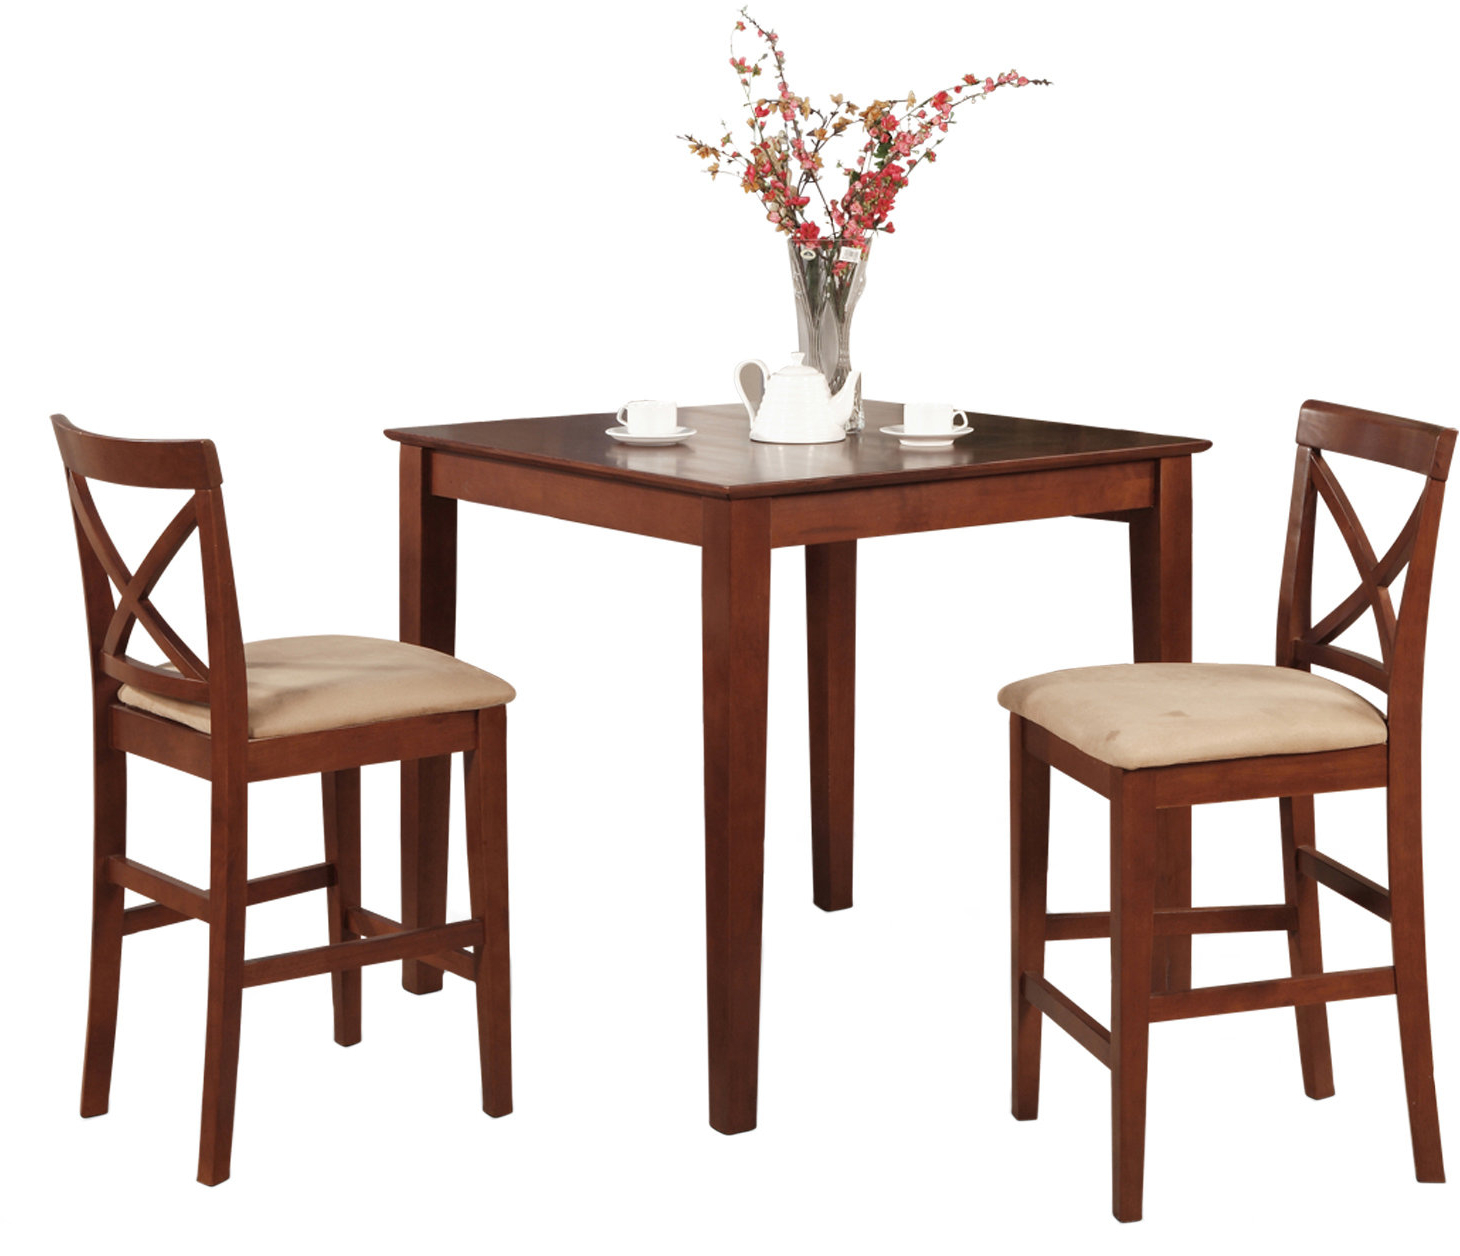 Pleasant View 3 Piece Counter Height Bistro Set Throughout Most Current Bettencourt 3 Piece Counter Height Dining Sets (View 15 of 20)